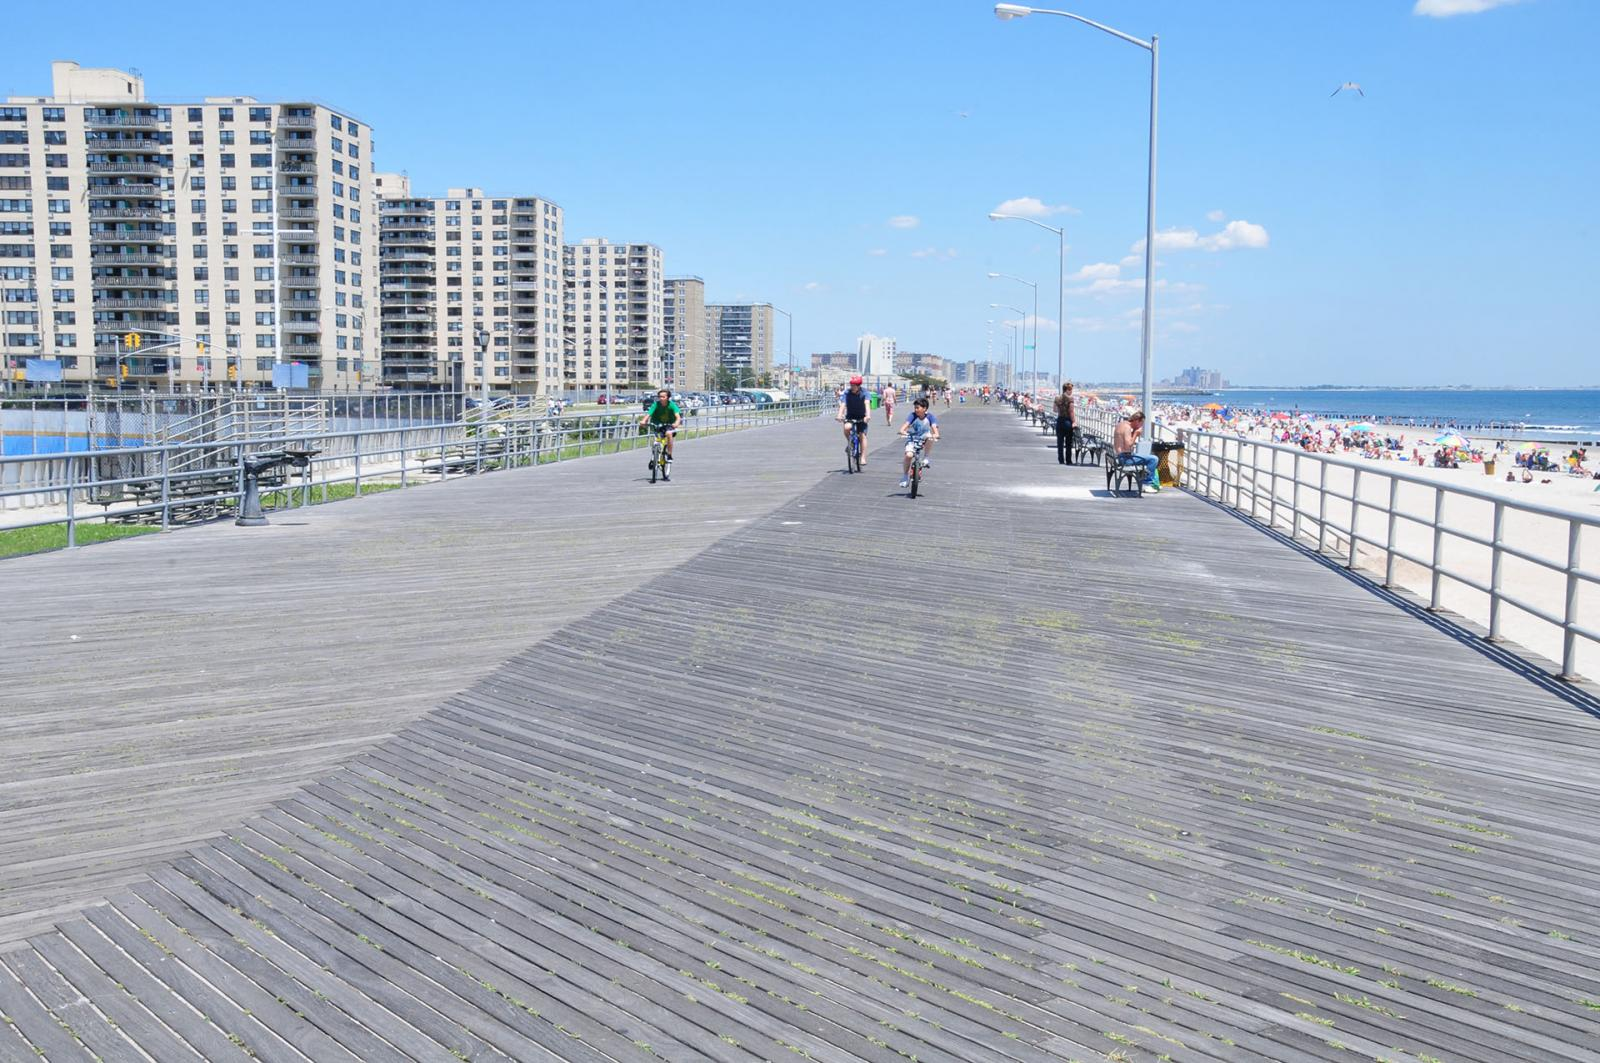 Rockaway Beach, New York.